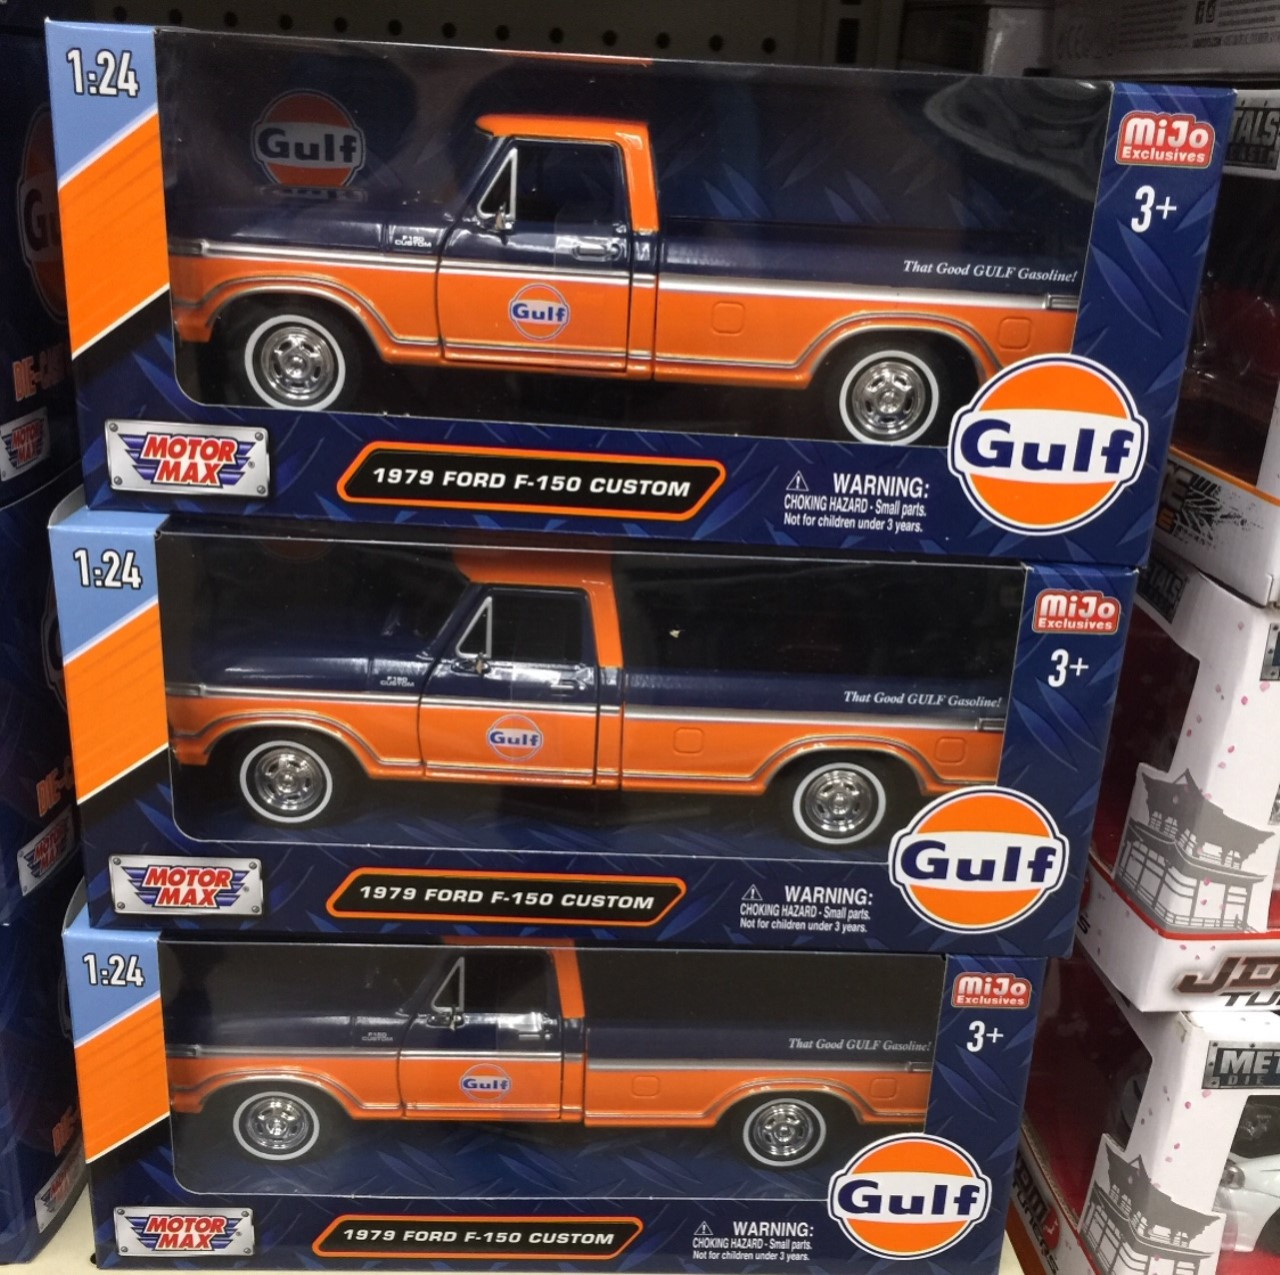 1979 Ford F 150 Pickup Truck Gulf Oil 1 24 Scale Diecast Model By